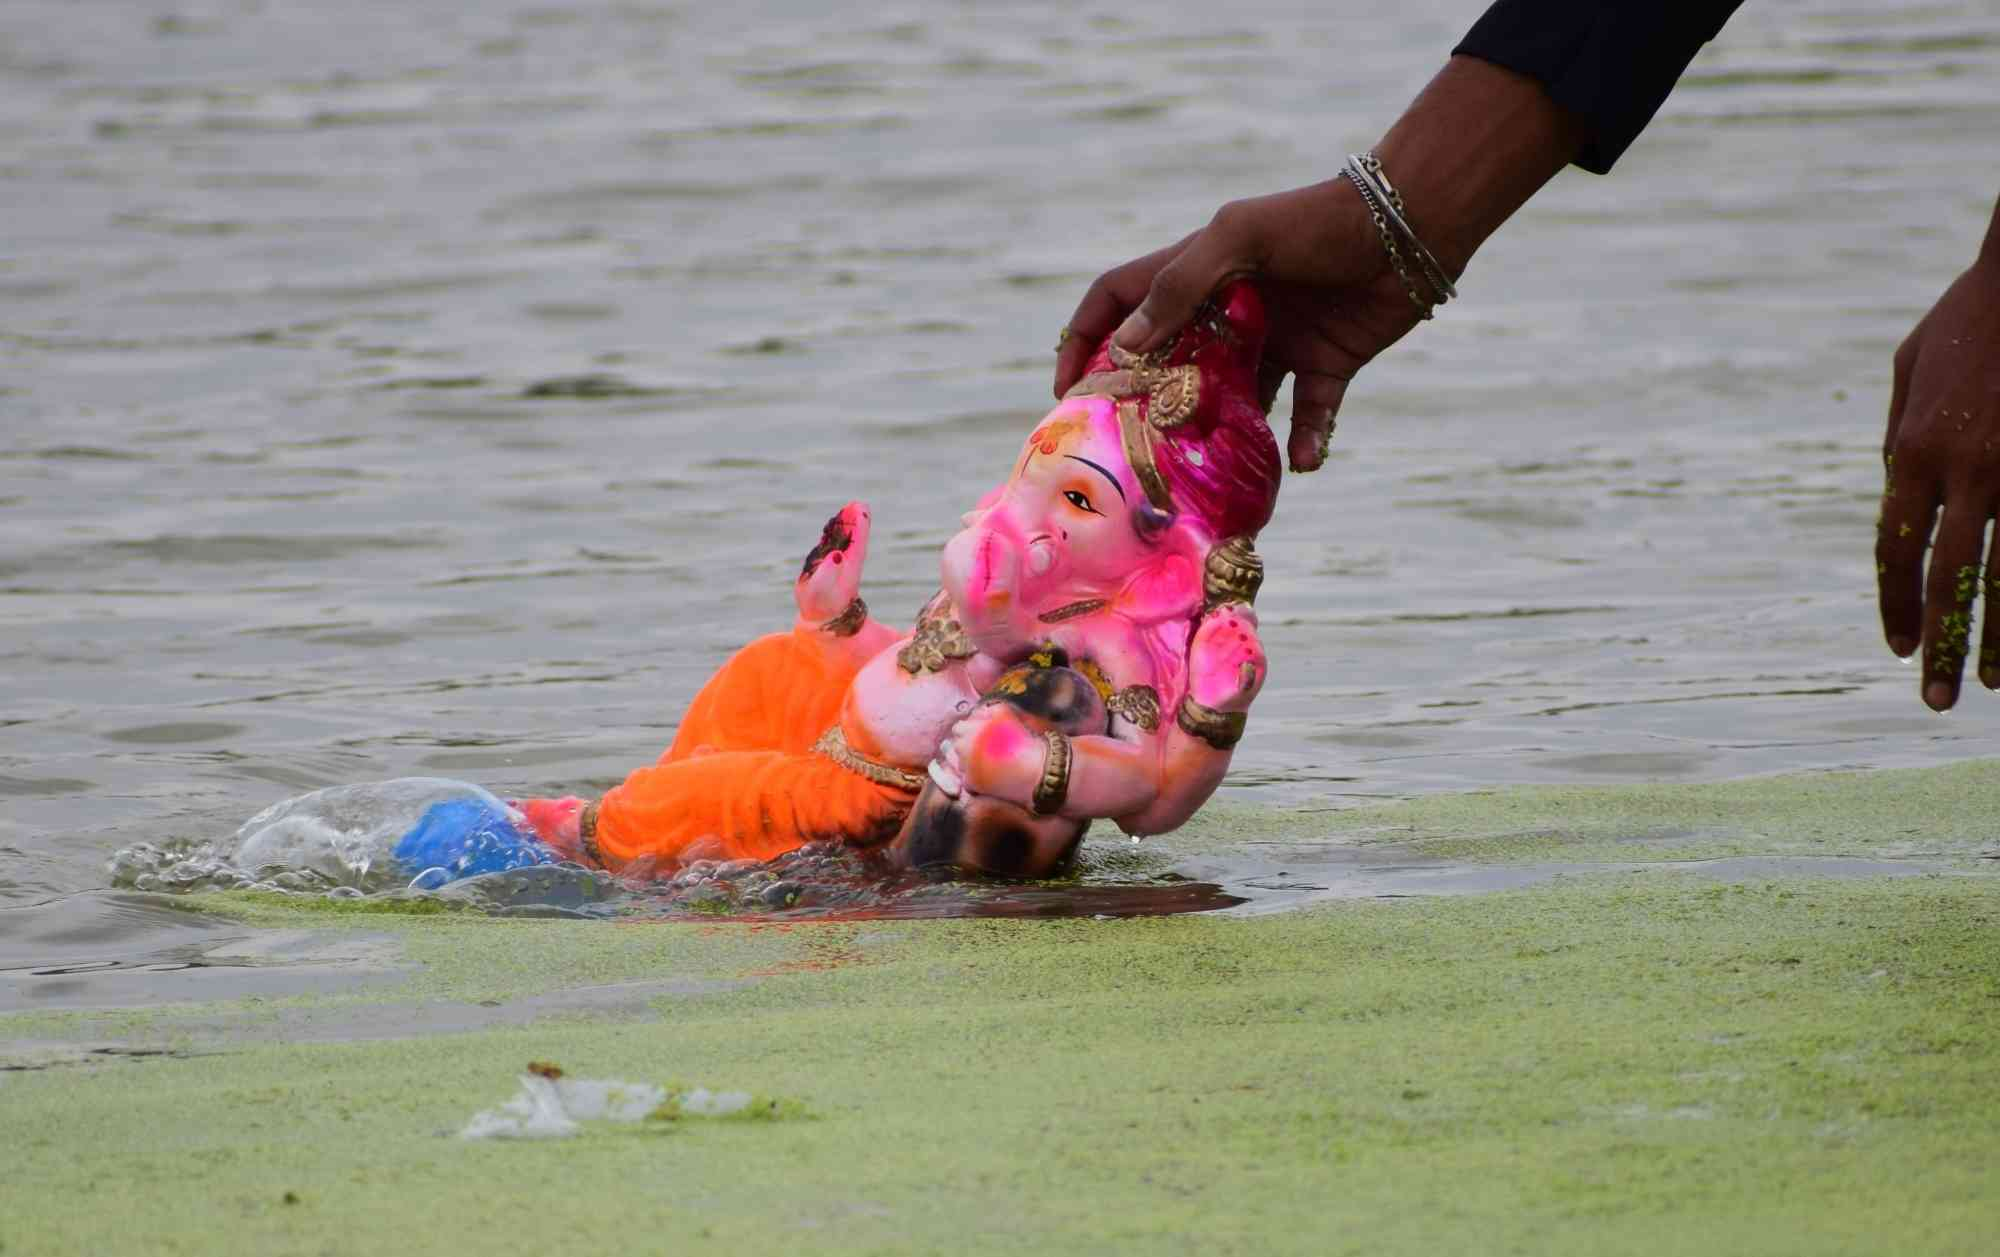 A devotee immerses a statue of the deity in Mathura on Sunday. (Credit: IANS)